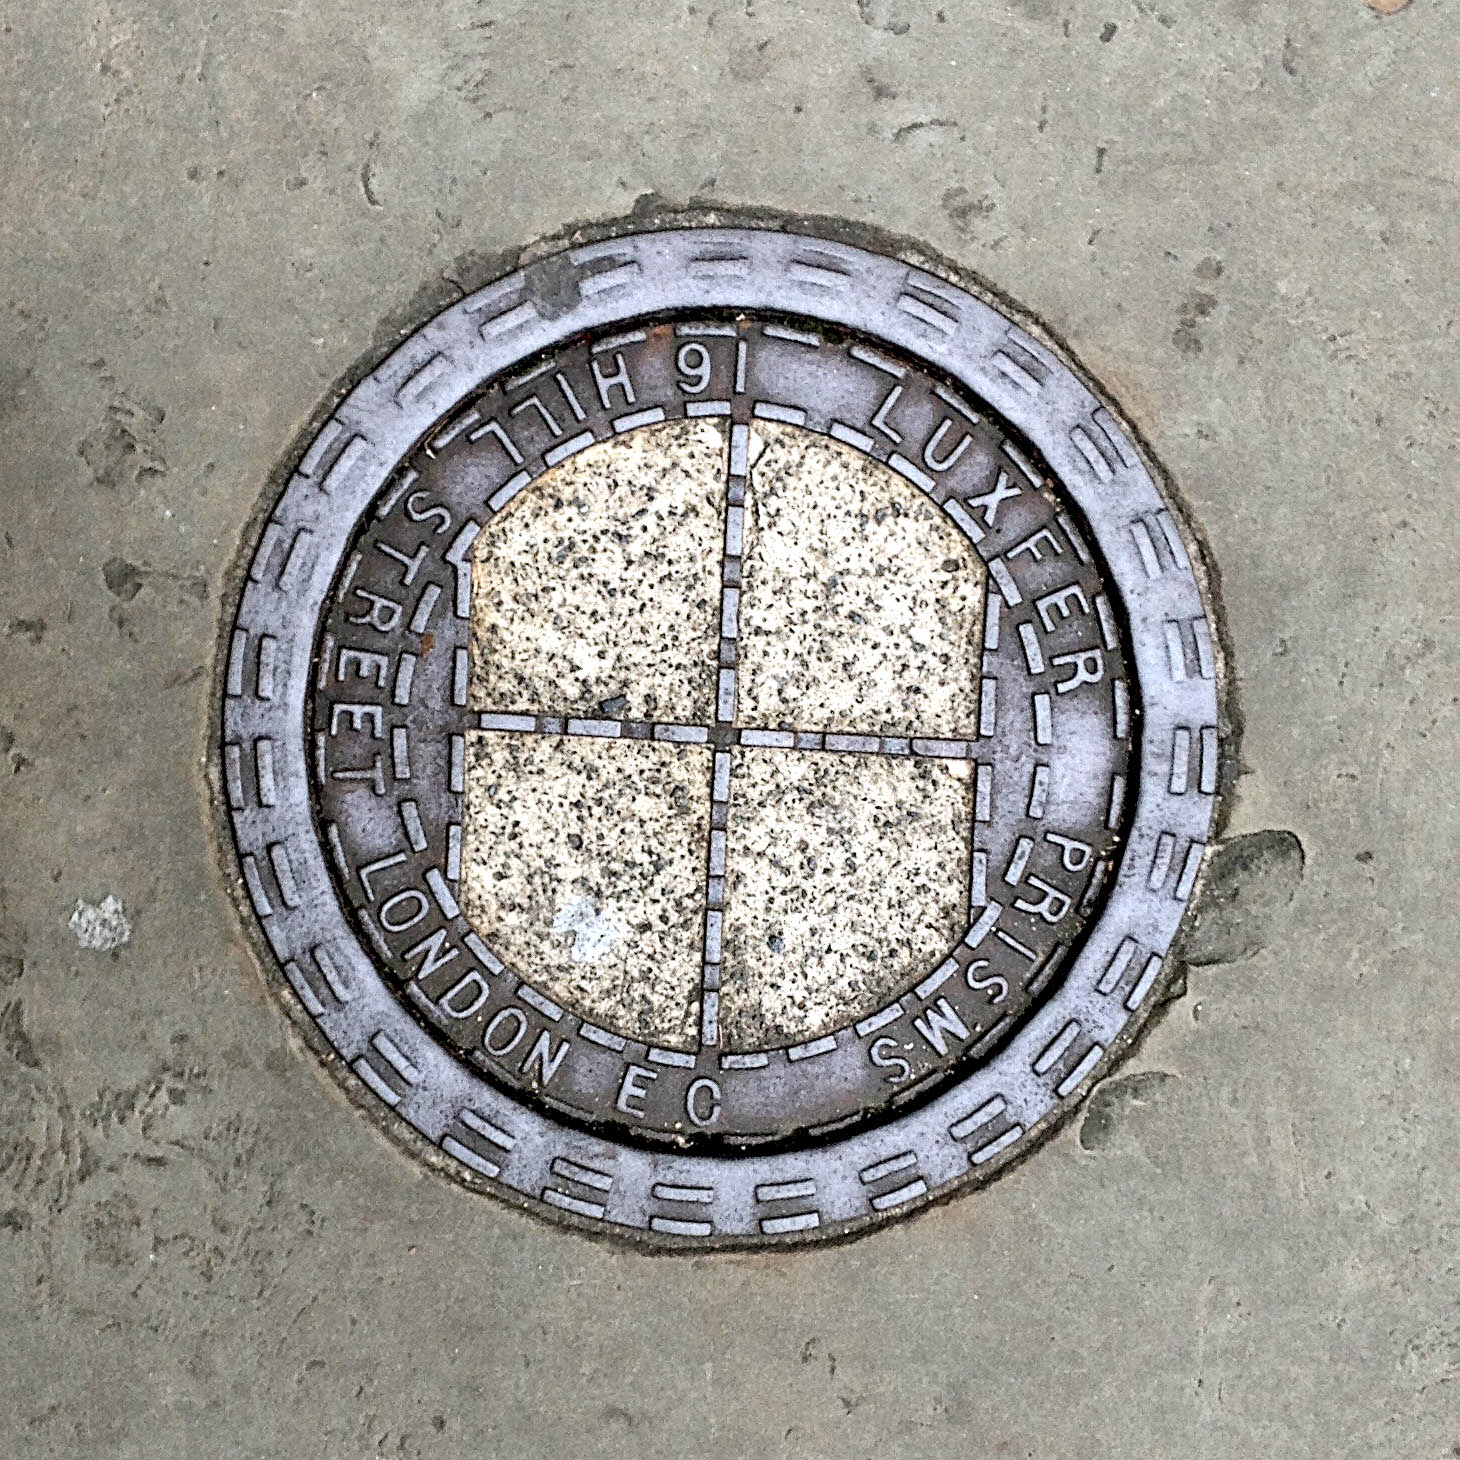 Manhole Cover, London - Cast iron surround inscribed with Luxfer Prisms 16 Hill Street London EC - Concrete centre divided into four sections